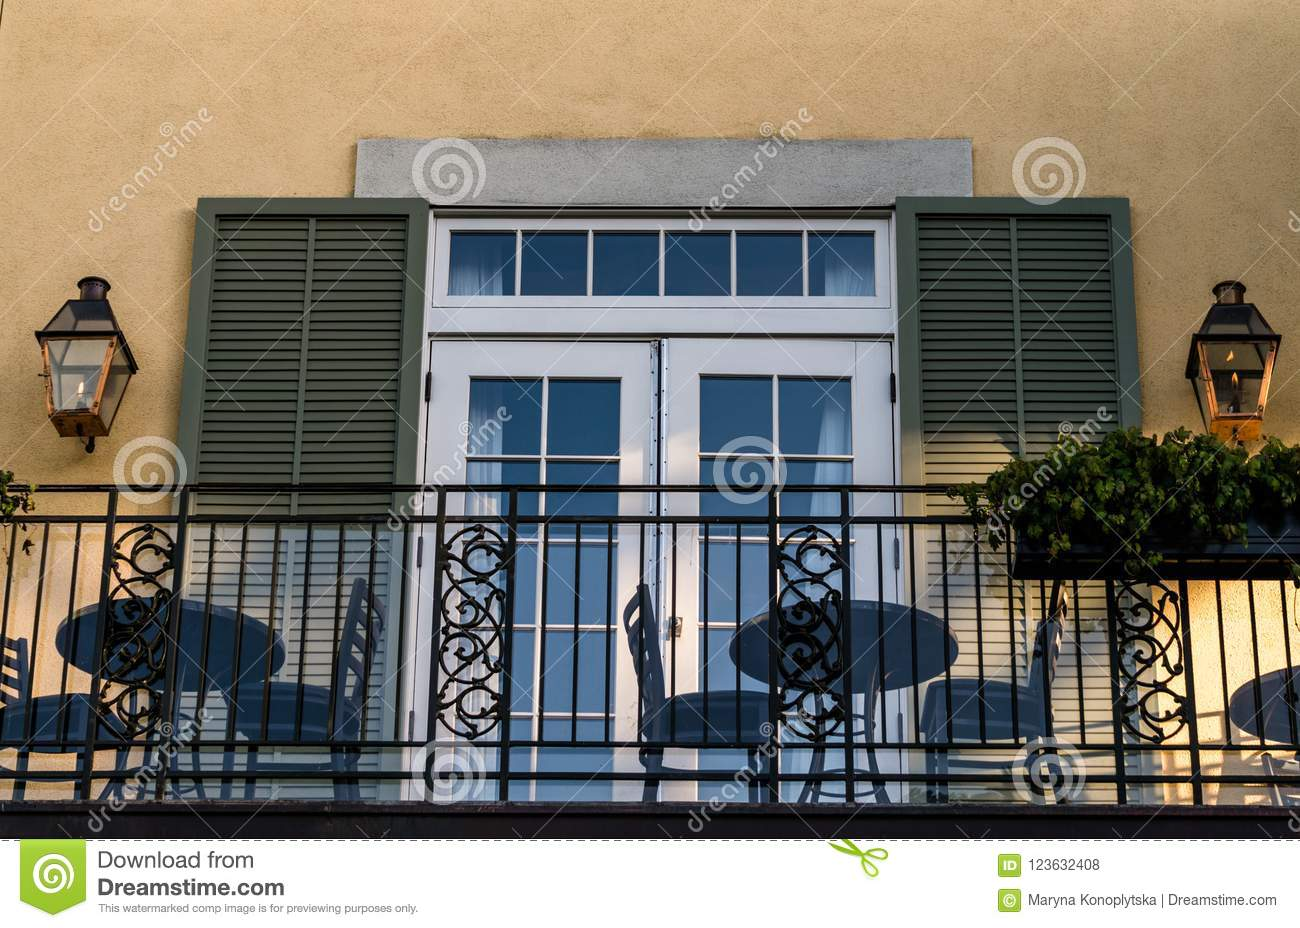 Download beautiful windows of old mansions of the french quarter in new orleans stock photo